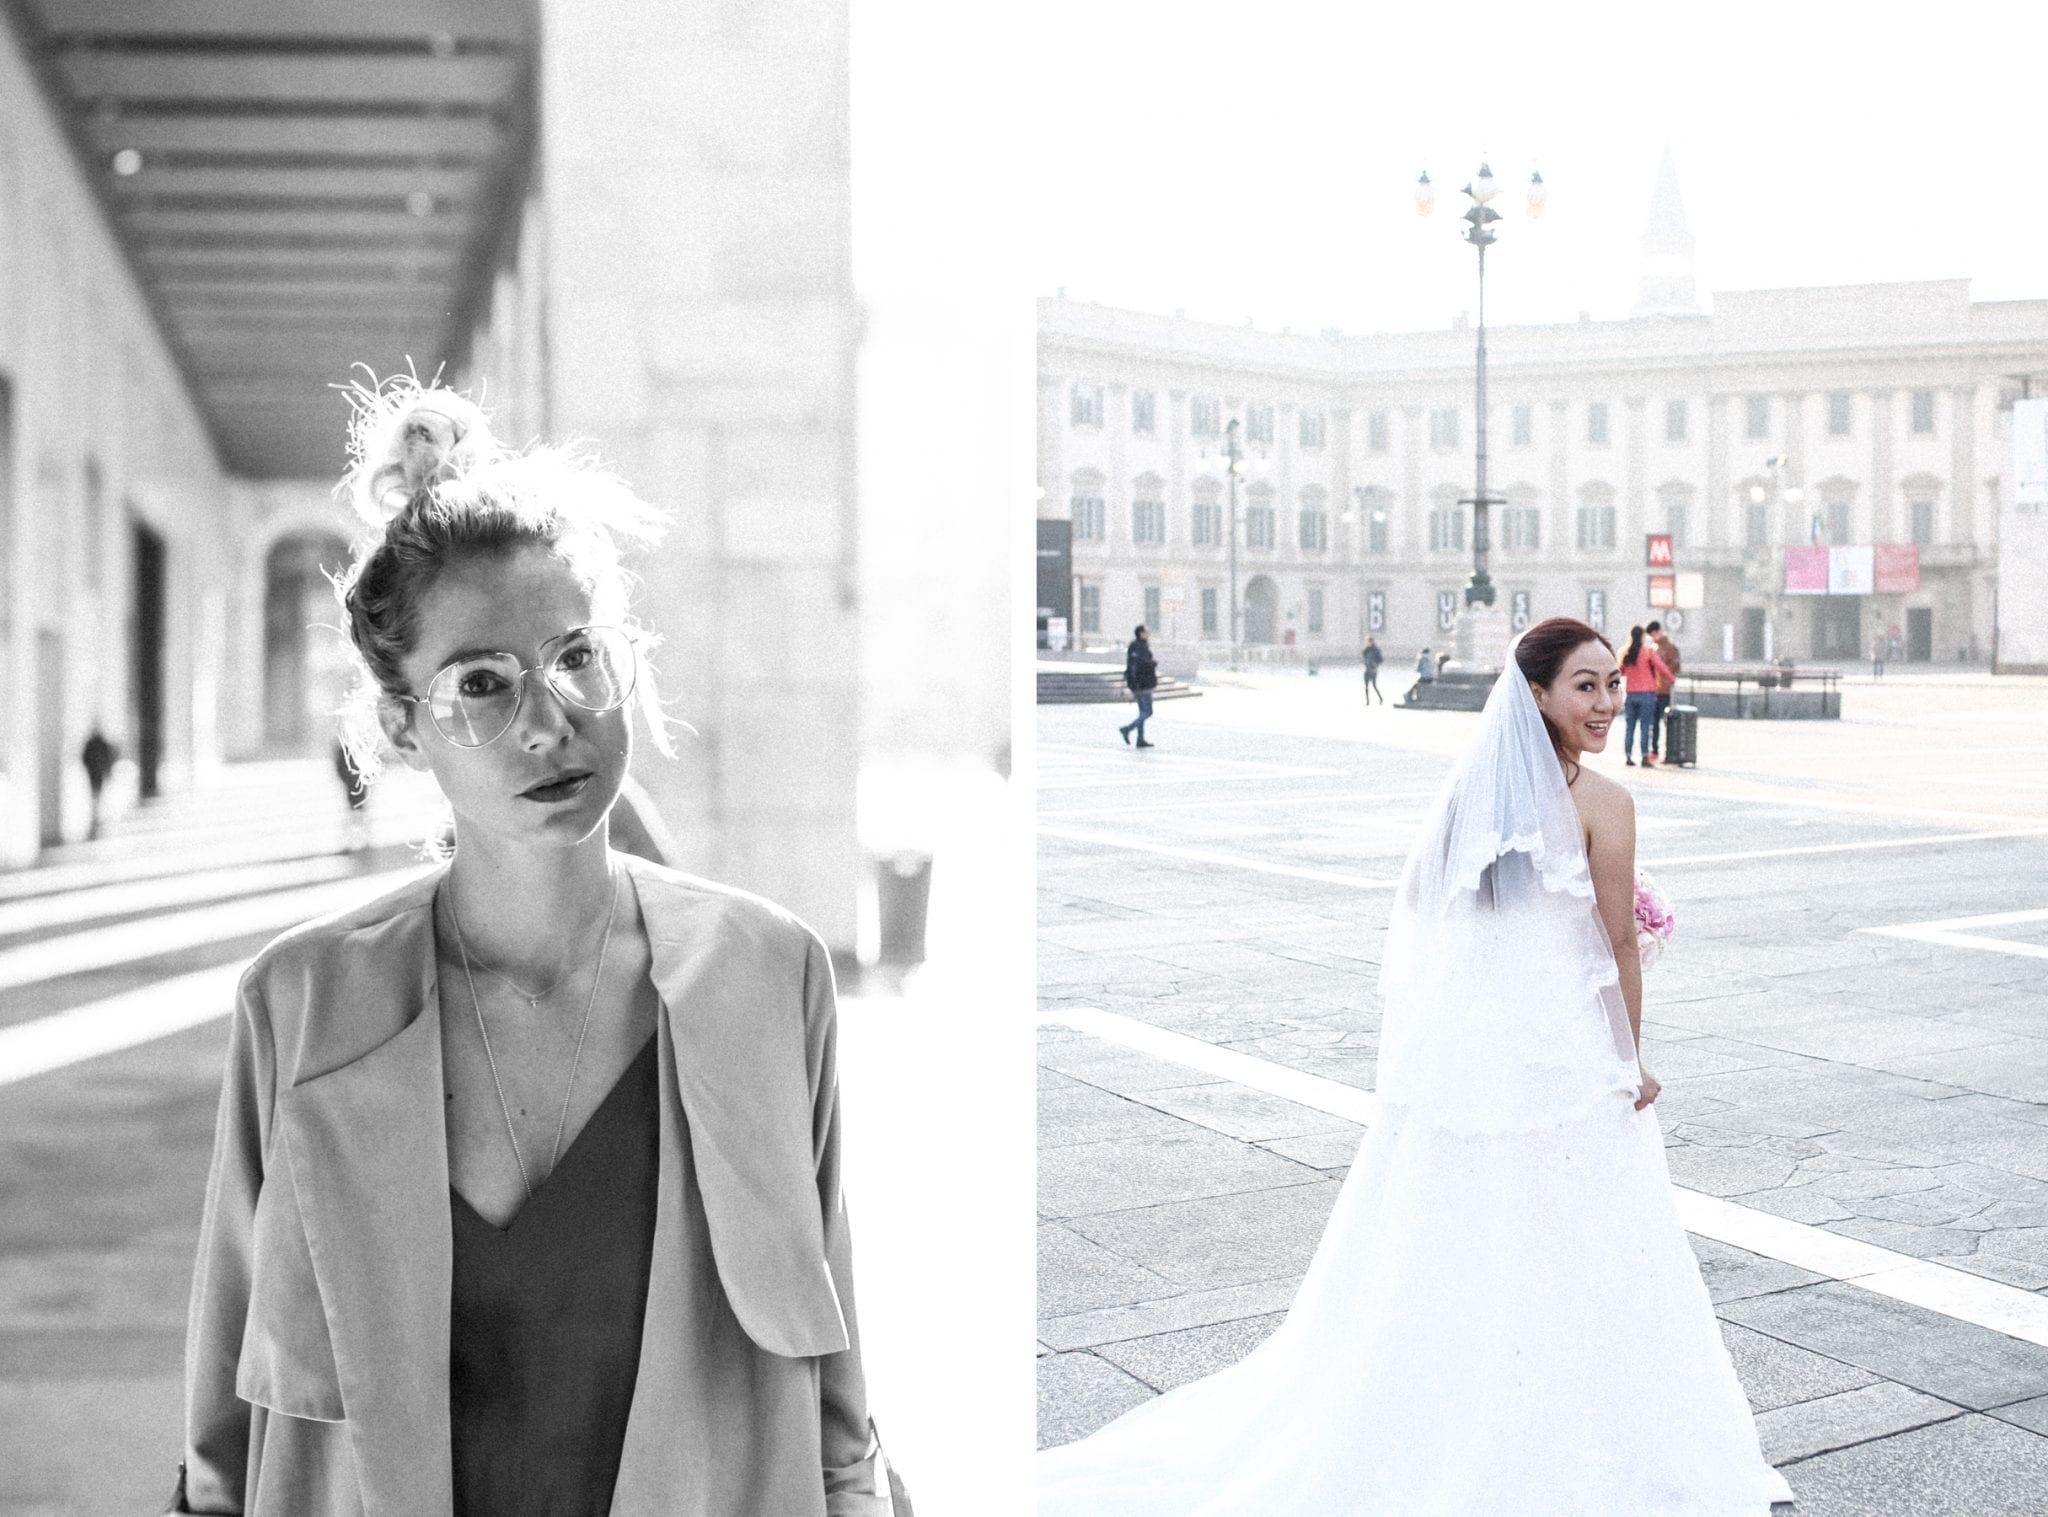 CK_1604_Constantly-K-milano-street-style-fashion-eataly-3866-bridal